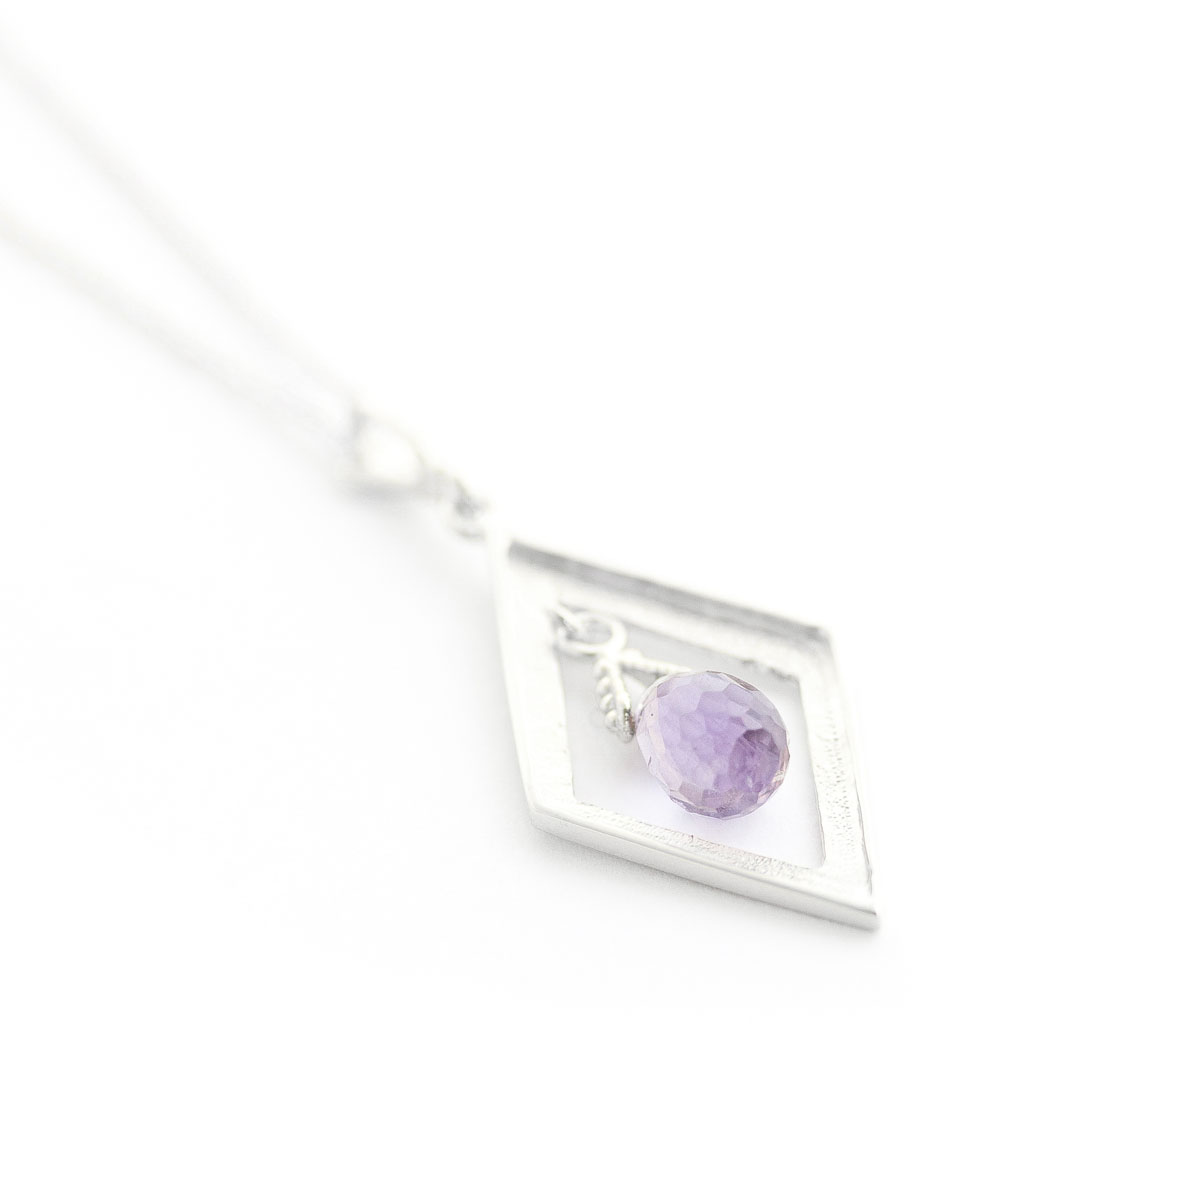 Amethyst Kite Pendant Necklace 0.7 ct in 9ct White Gold